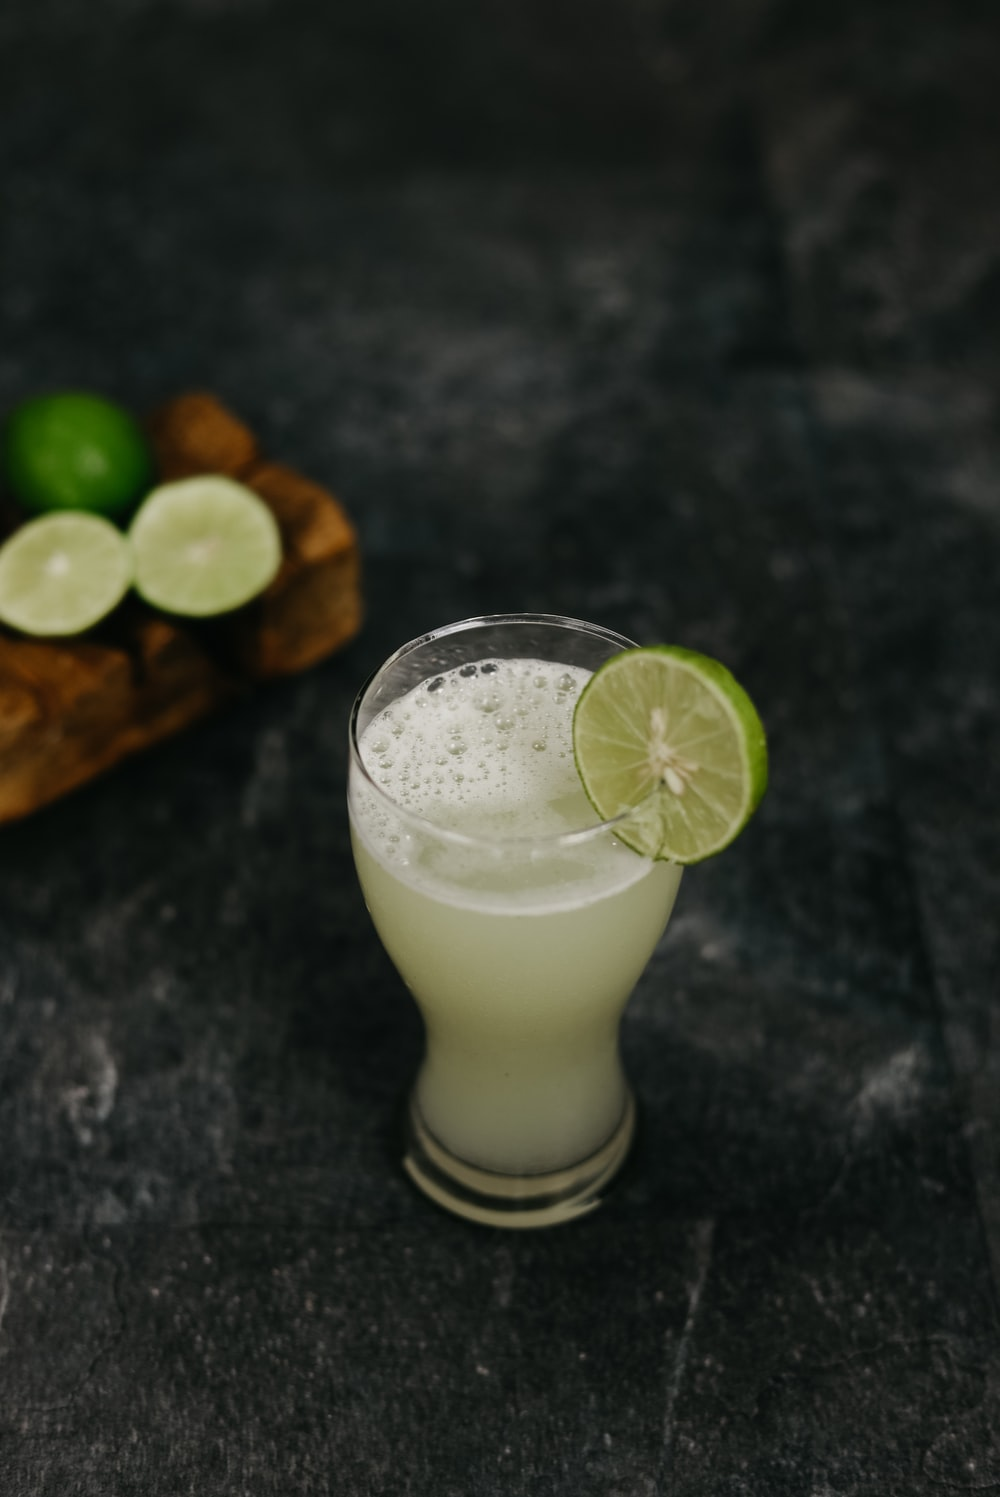 clear drinking glass with white liquid and sliced lemon